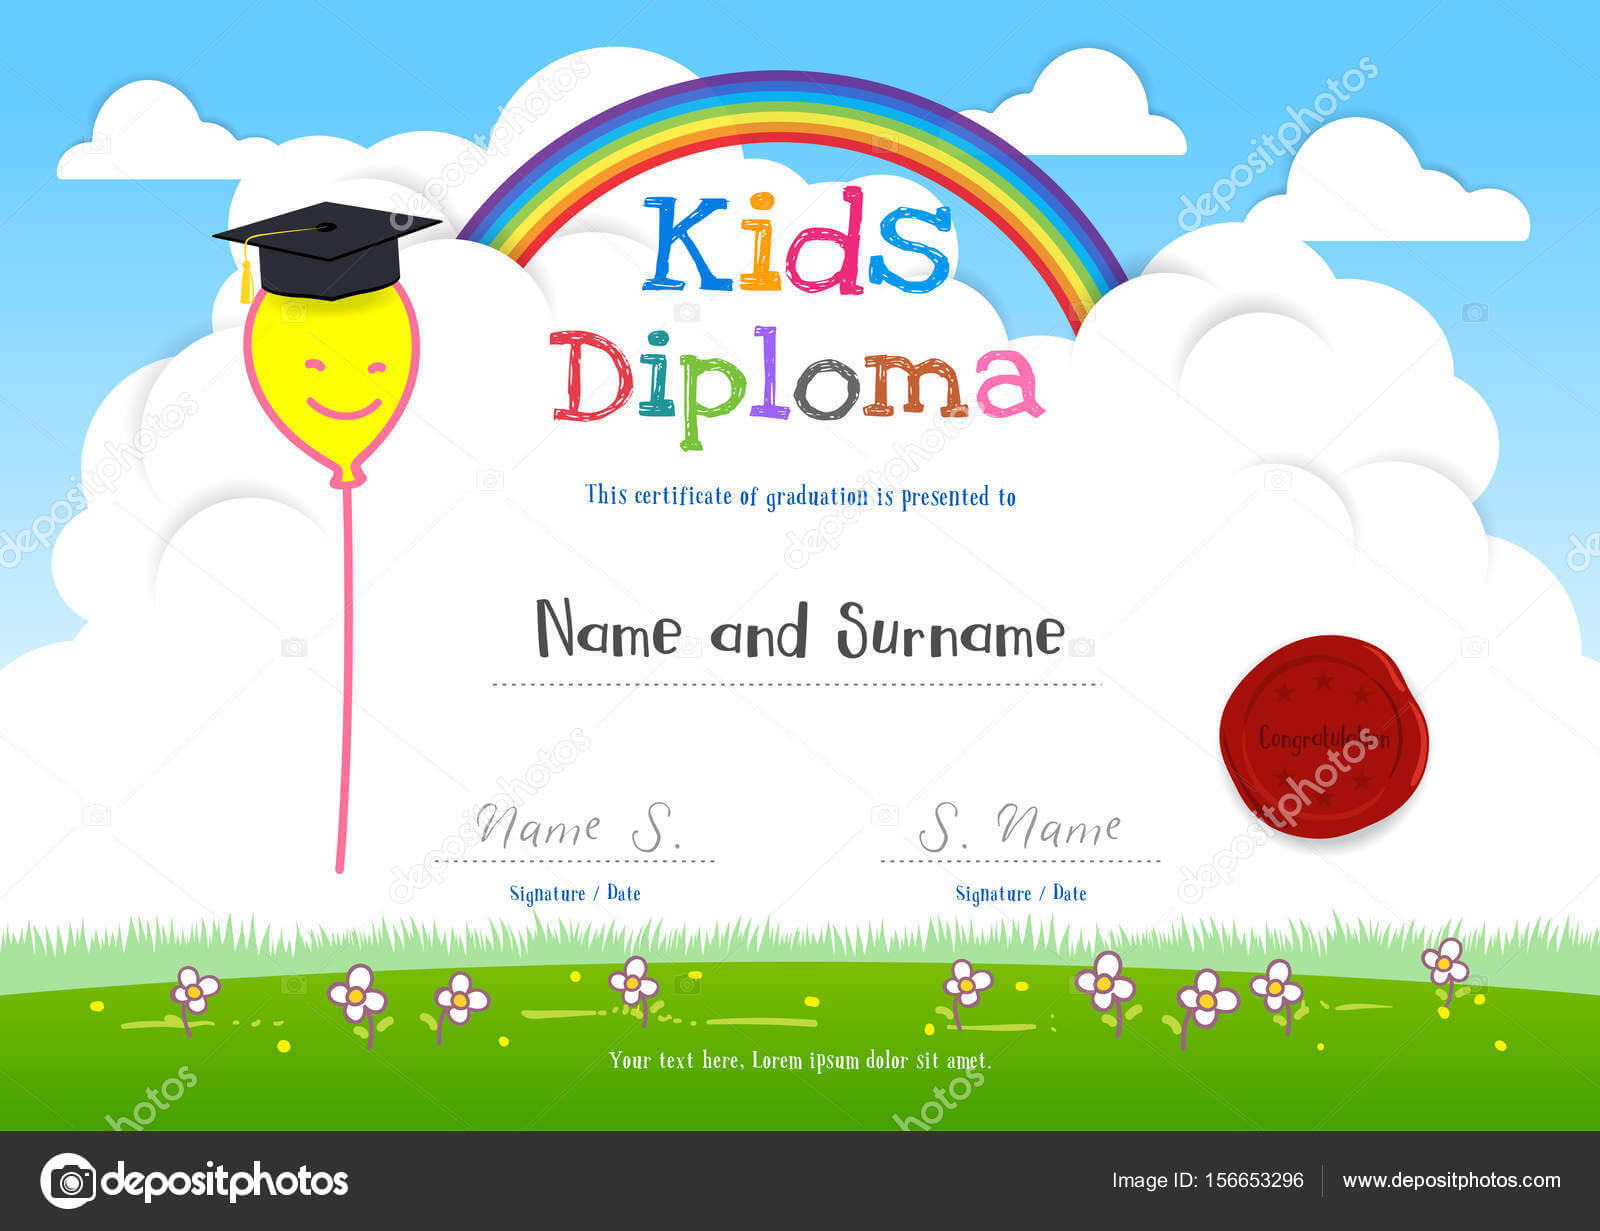 Colorful Kids Summer Camp Diploma Certificate Template In With Children's Certificate Template